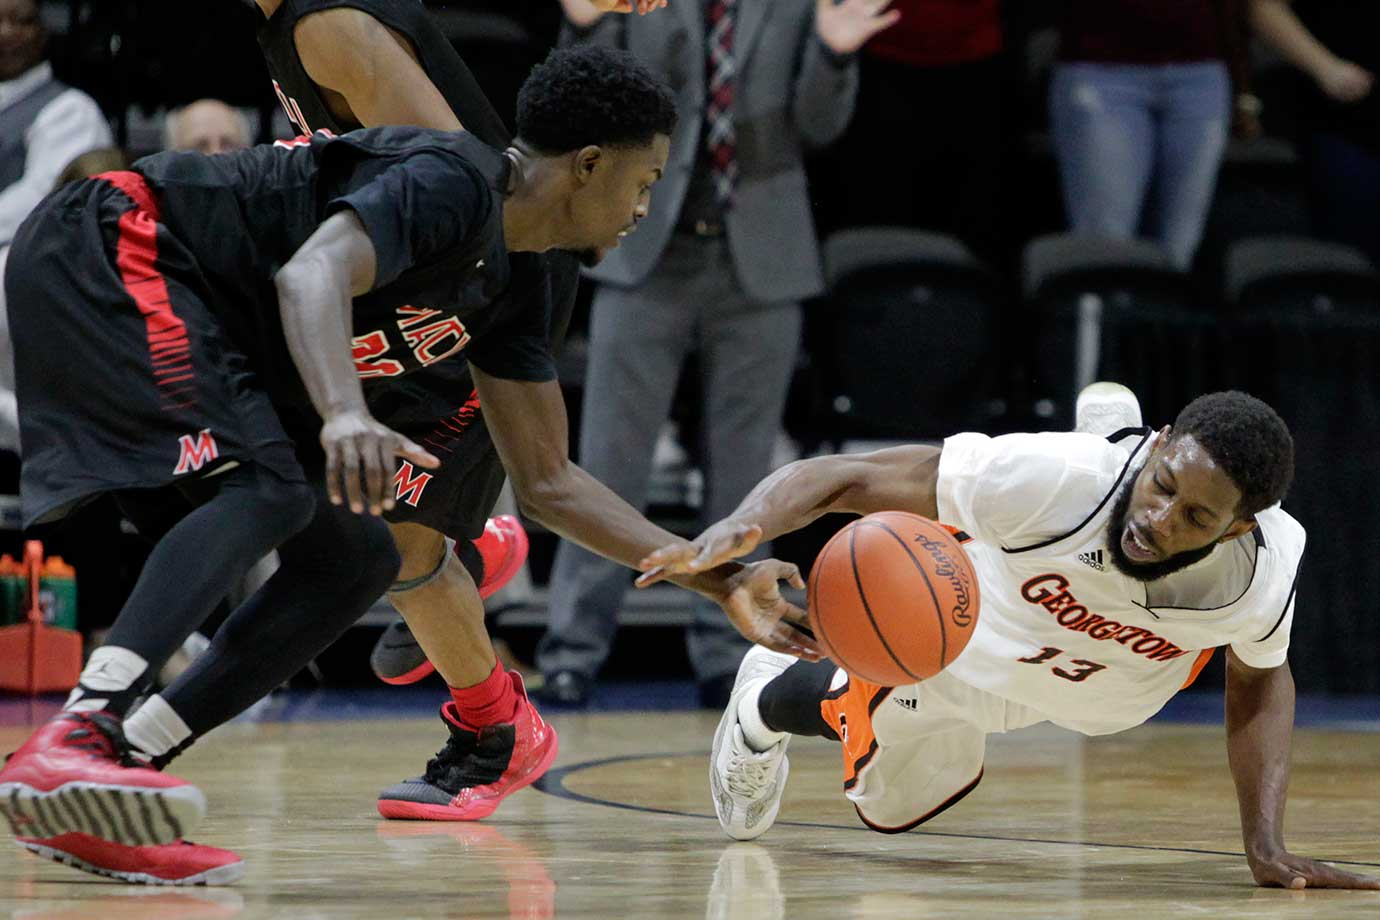 Mid-America Christian's Bryon Miller and Georgetown (Ky.) guard Tony Kimbro go after a loose ball during the NAIA championship game in Kansas City, Mo. Mid-America Christian won 100-99 in overtime.